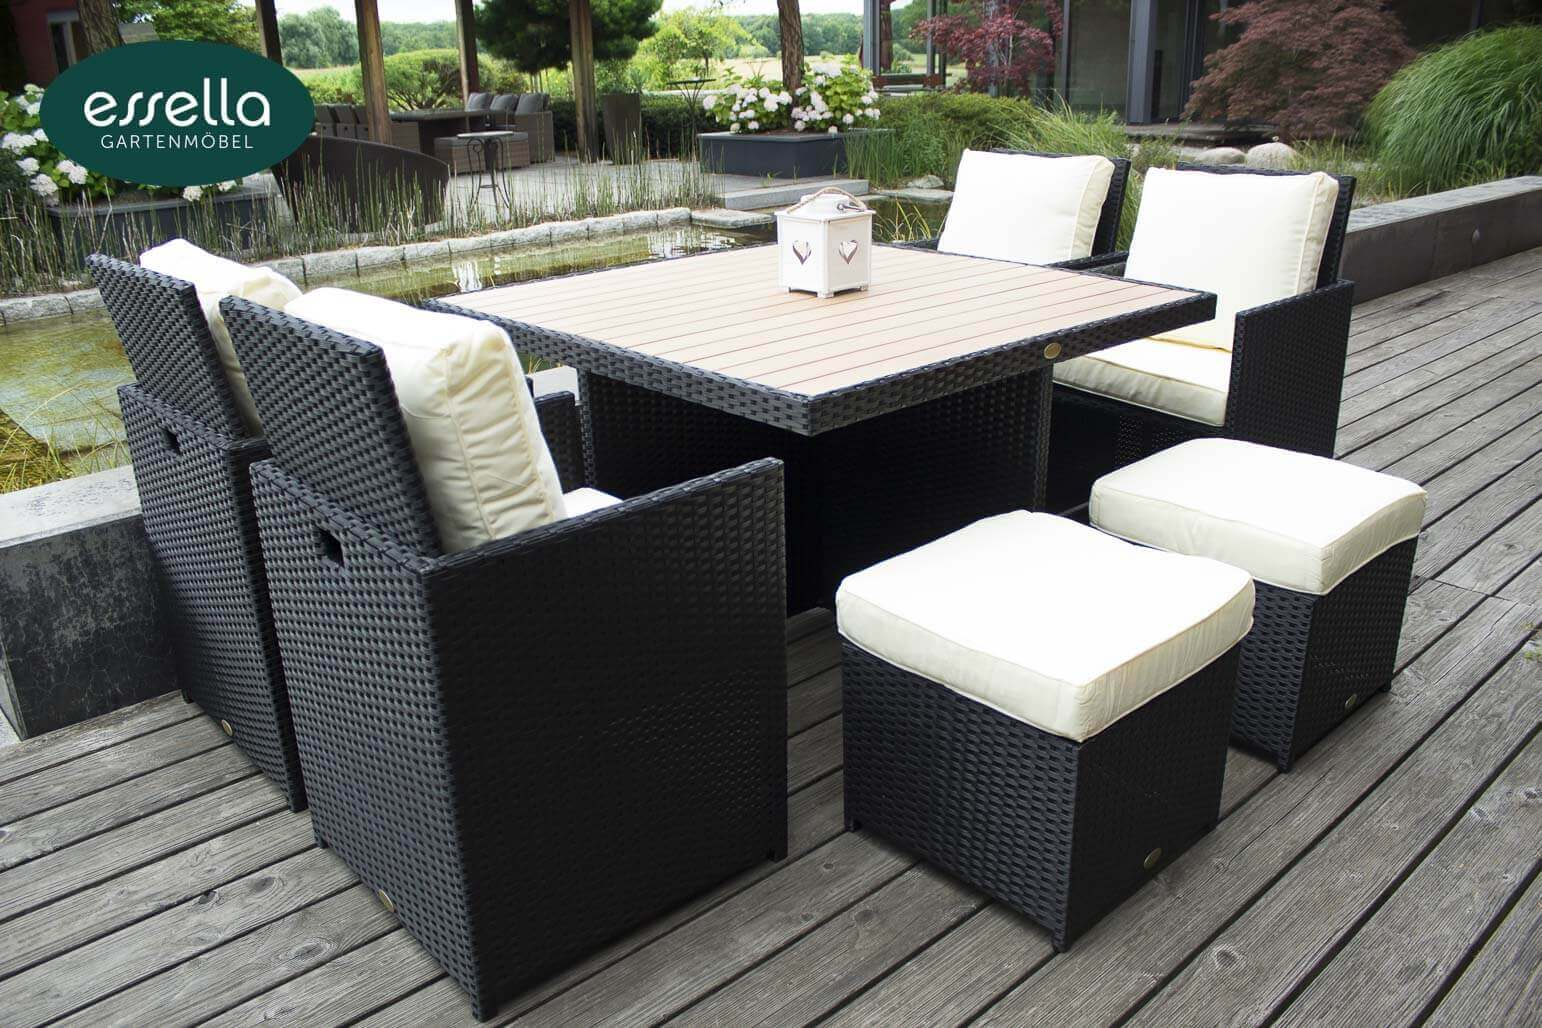 essella polyrattan sitzgruppe vienna 4 personen polywood flachgeflecht. Black Bedroom Furniture Sets. Home Design Ideas